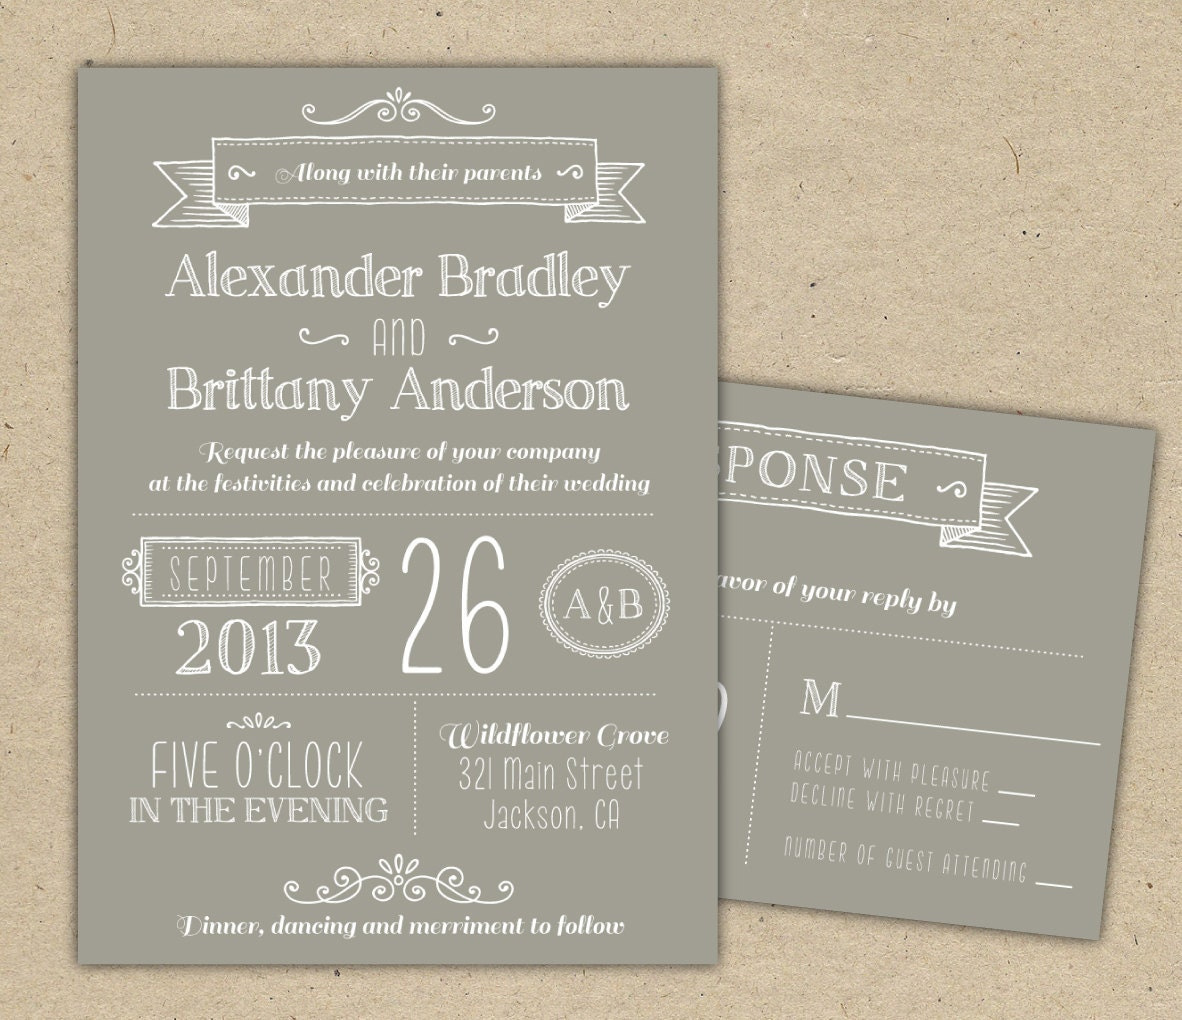 Rustic Wedding Invitations Templates for amazing invitation layout